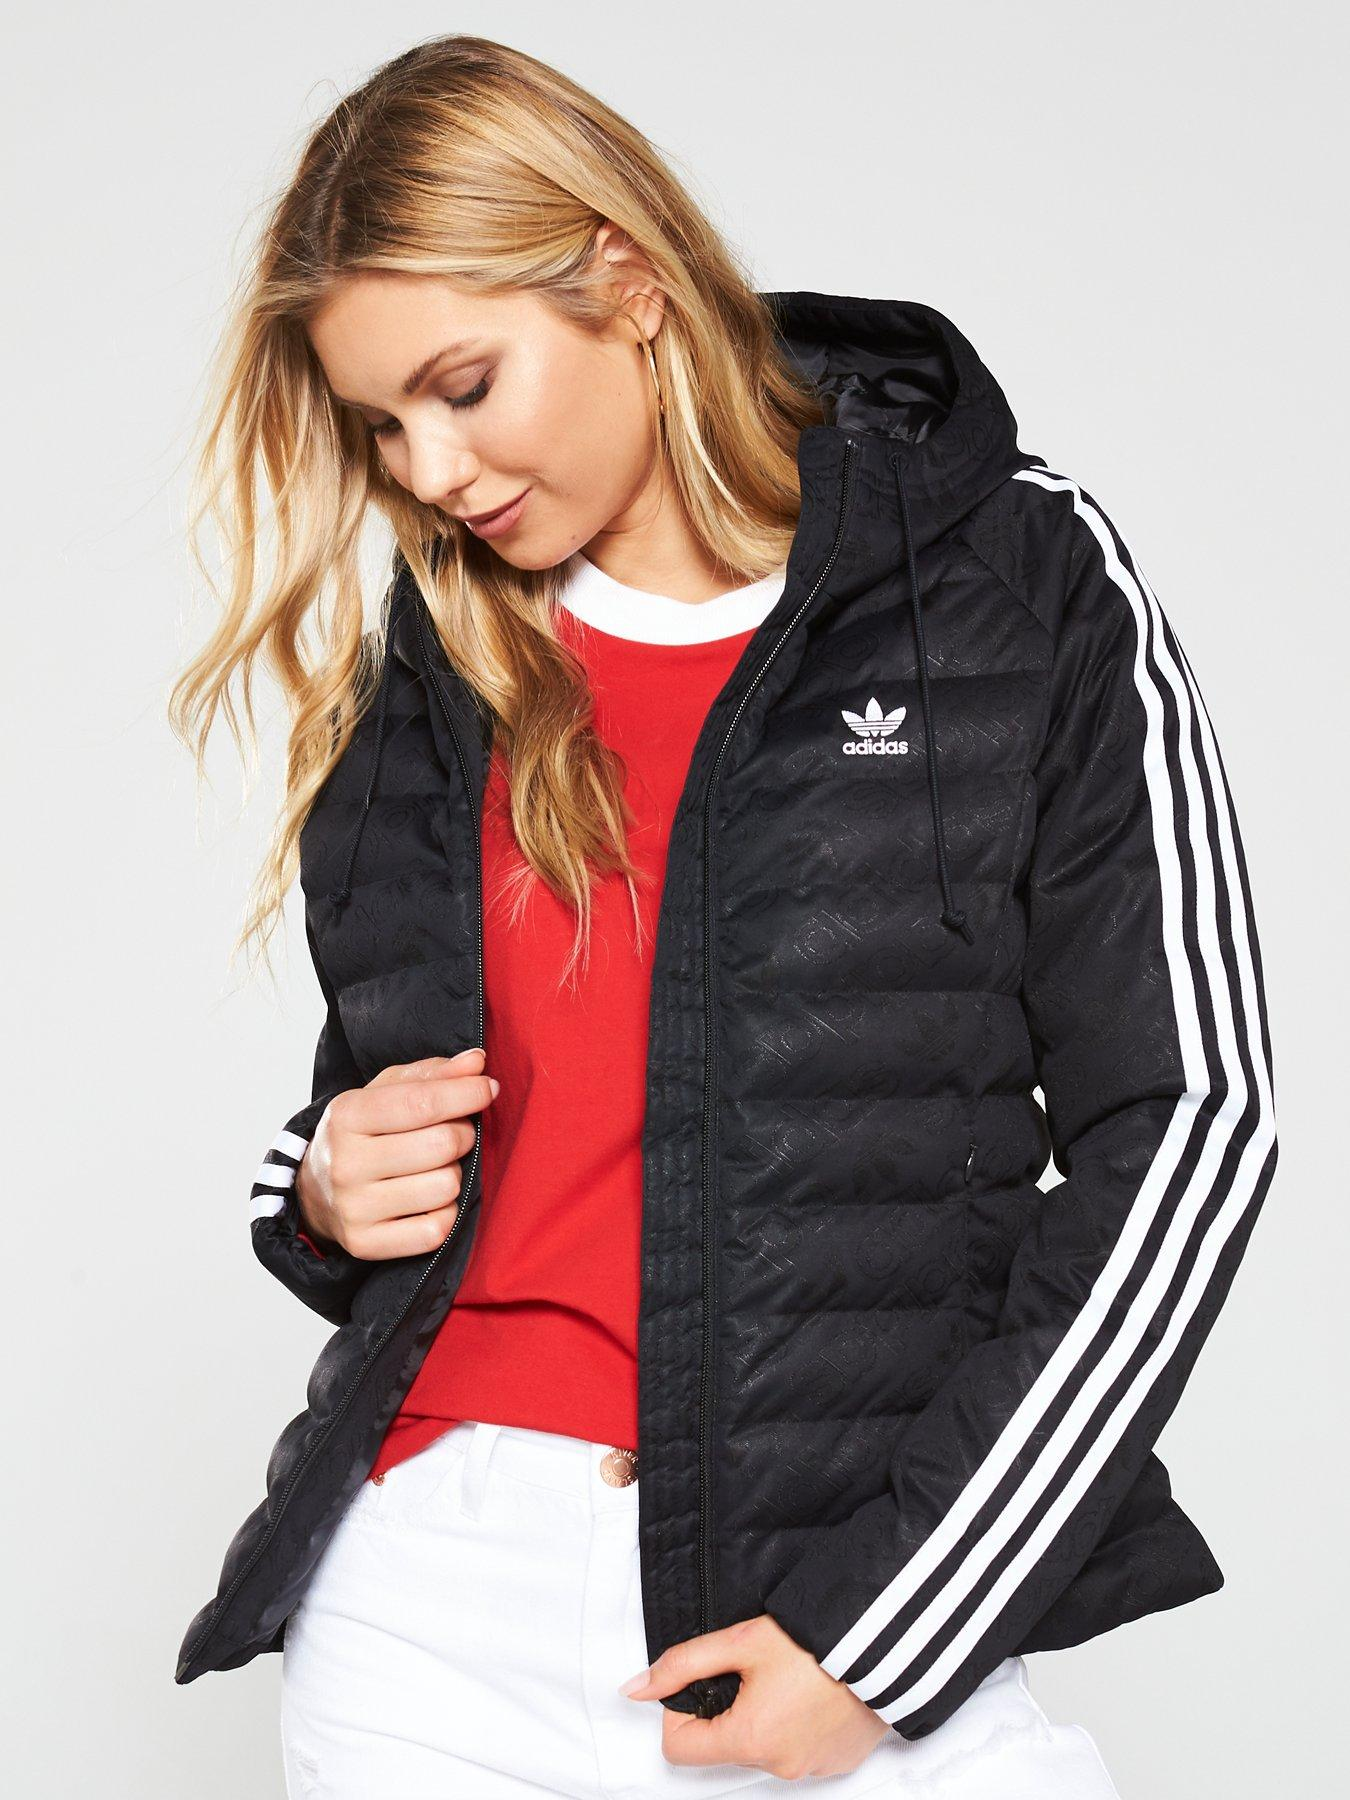 Adidas | Coats & jackets | Women |